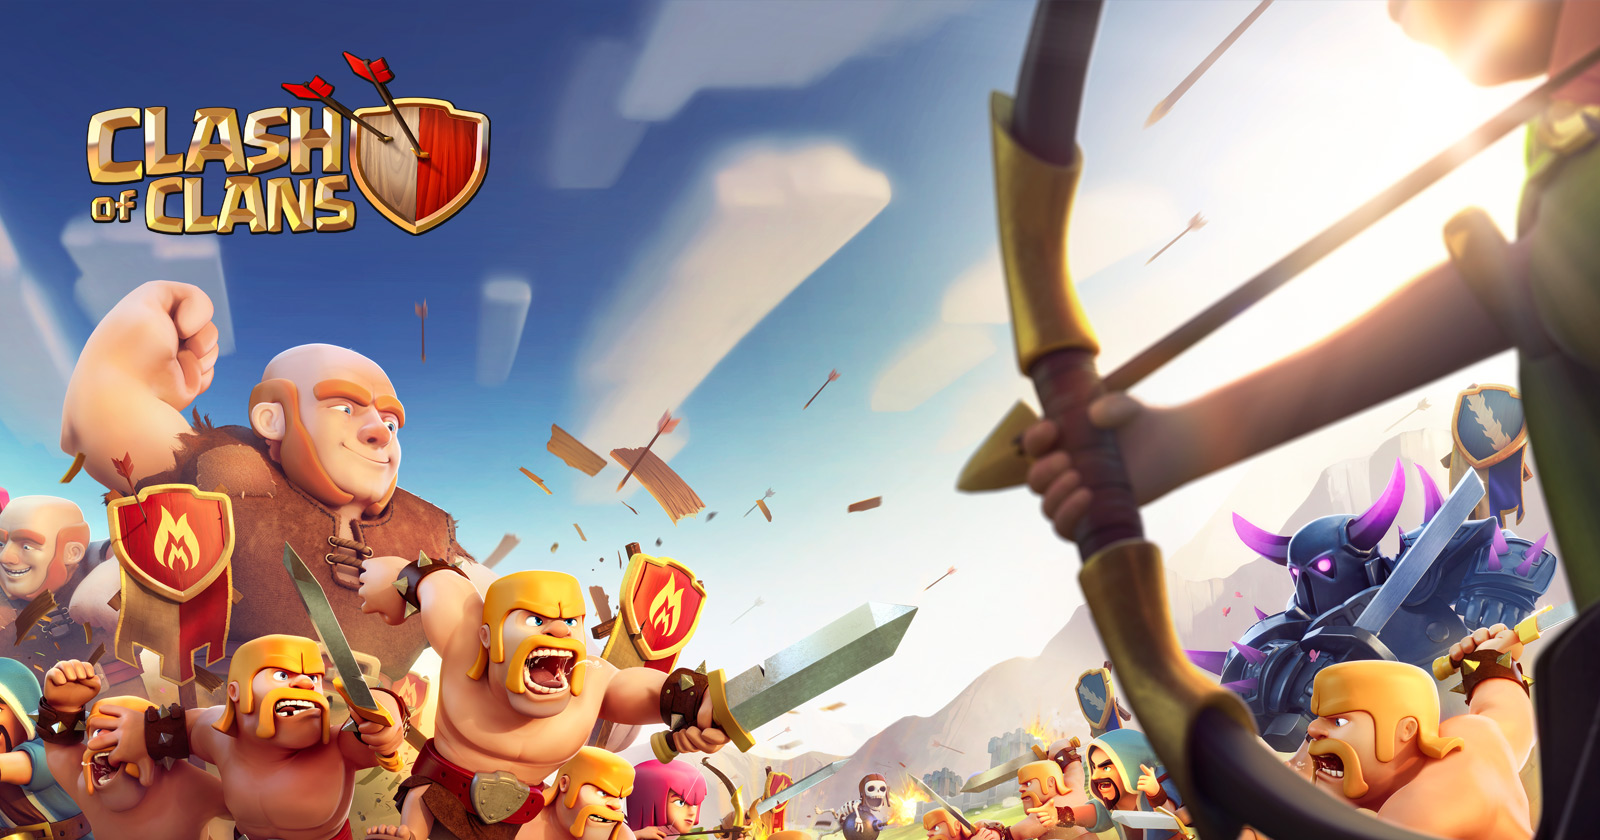 Modojo | Chinese Firm Tencent Looking To Close Deal on Mobile Gaming Giant Supercell